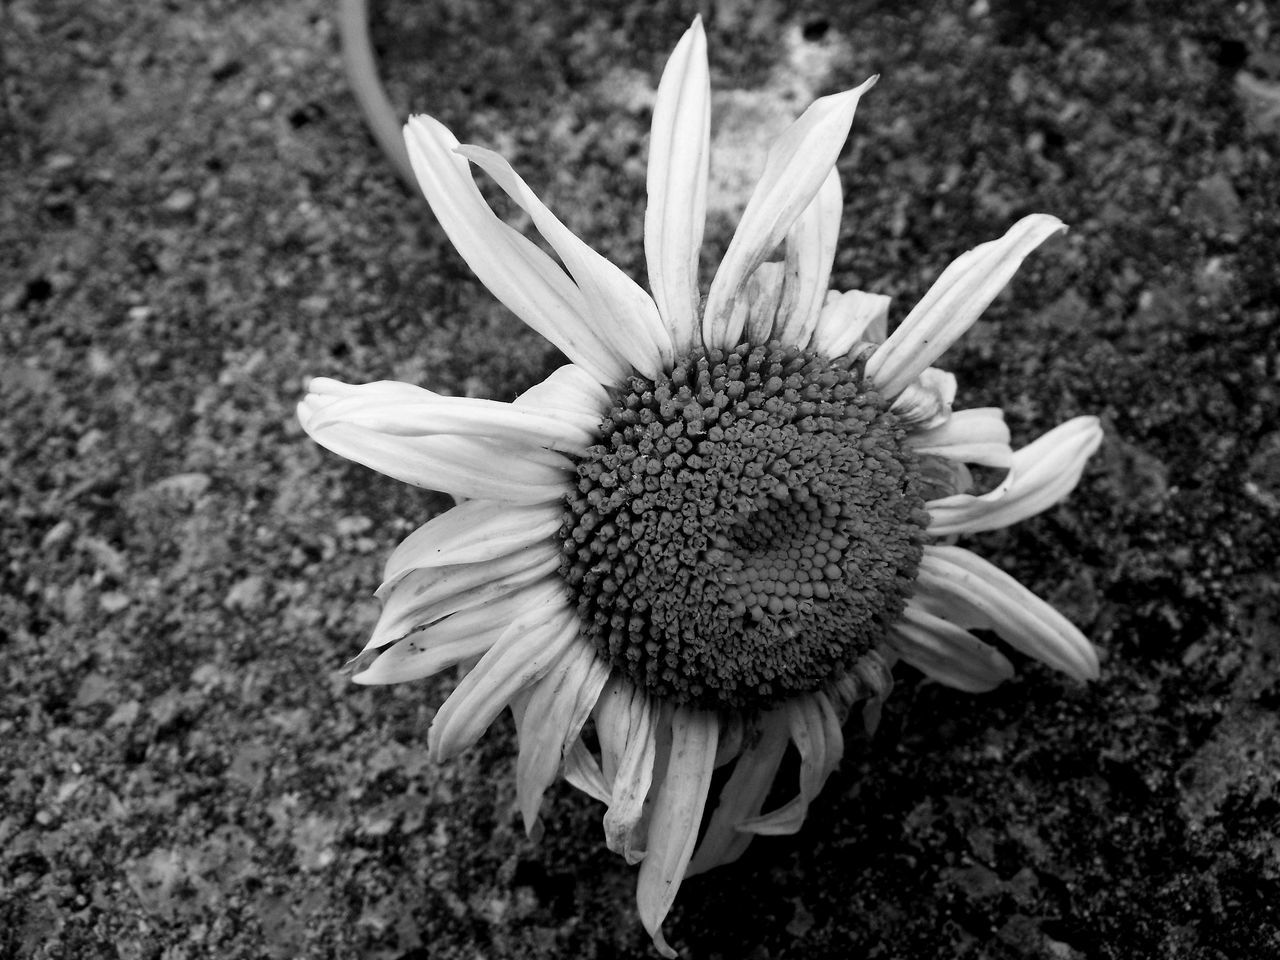 Appassito Bianco E Nero Black And White Daisy Die End Of Life EyeEm Best Shots EyeEm Gallery EyeEm Nature Lover EyeEmBestPics Fine Fiore Flower Margherita Morte Time Withered Flower